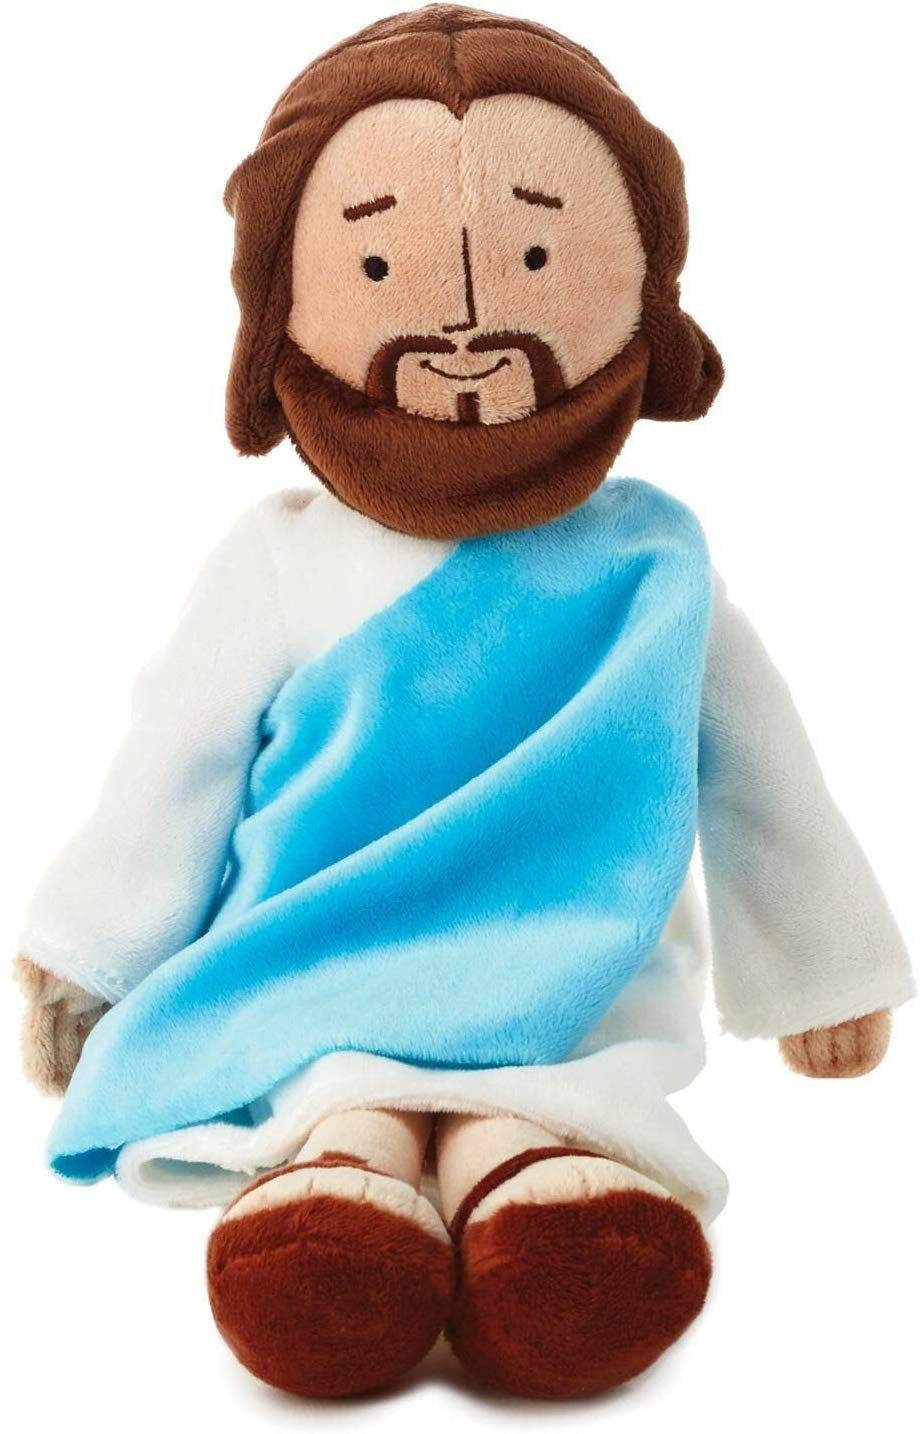 My Friend Jesus Stuffed Doll